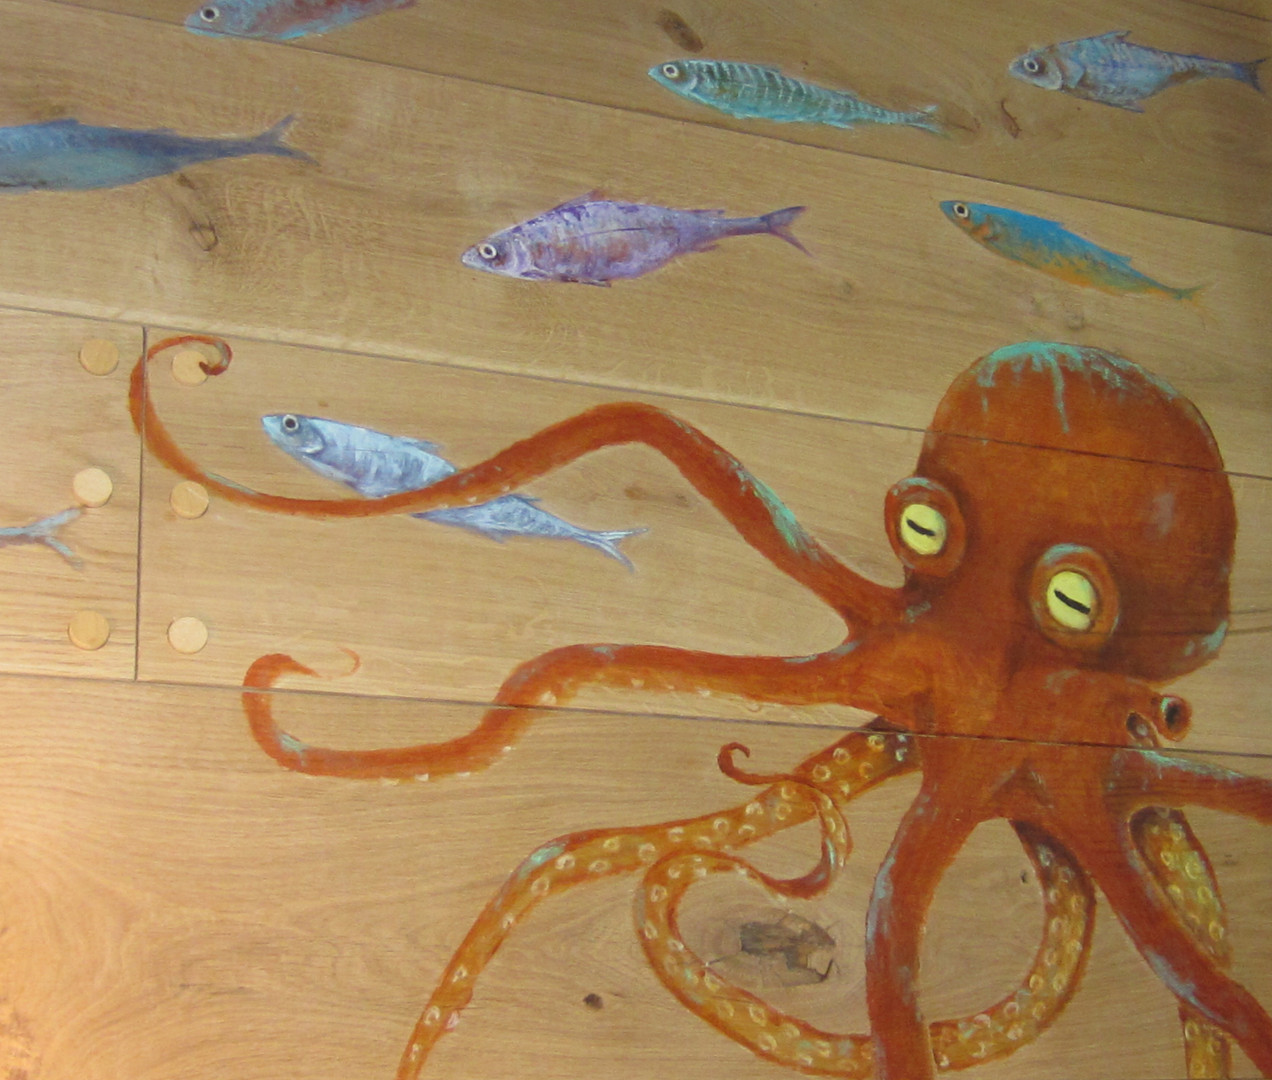 Octopus and small fish 2.jpg